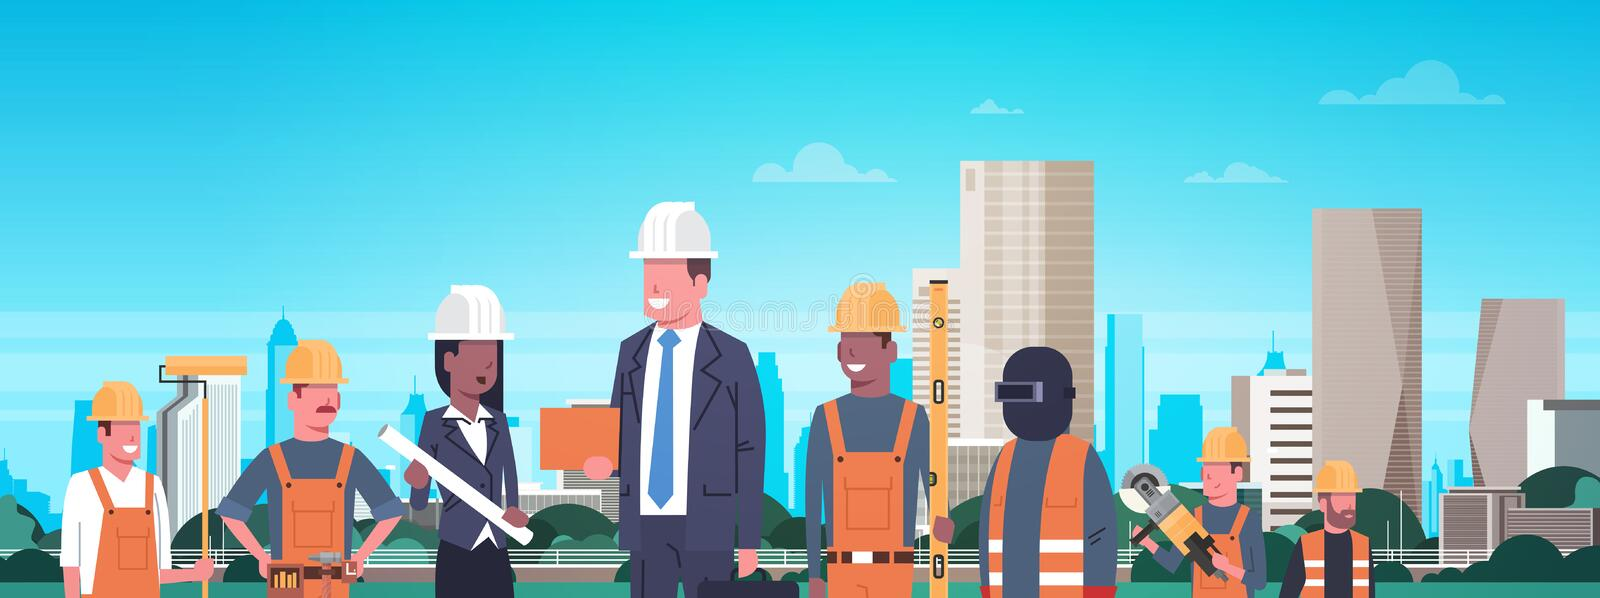 Construction Workers Team Over Modern City Background Horizontal Banner vector illustration